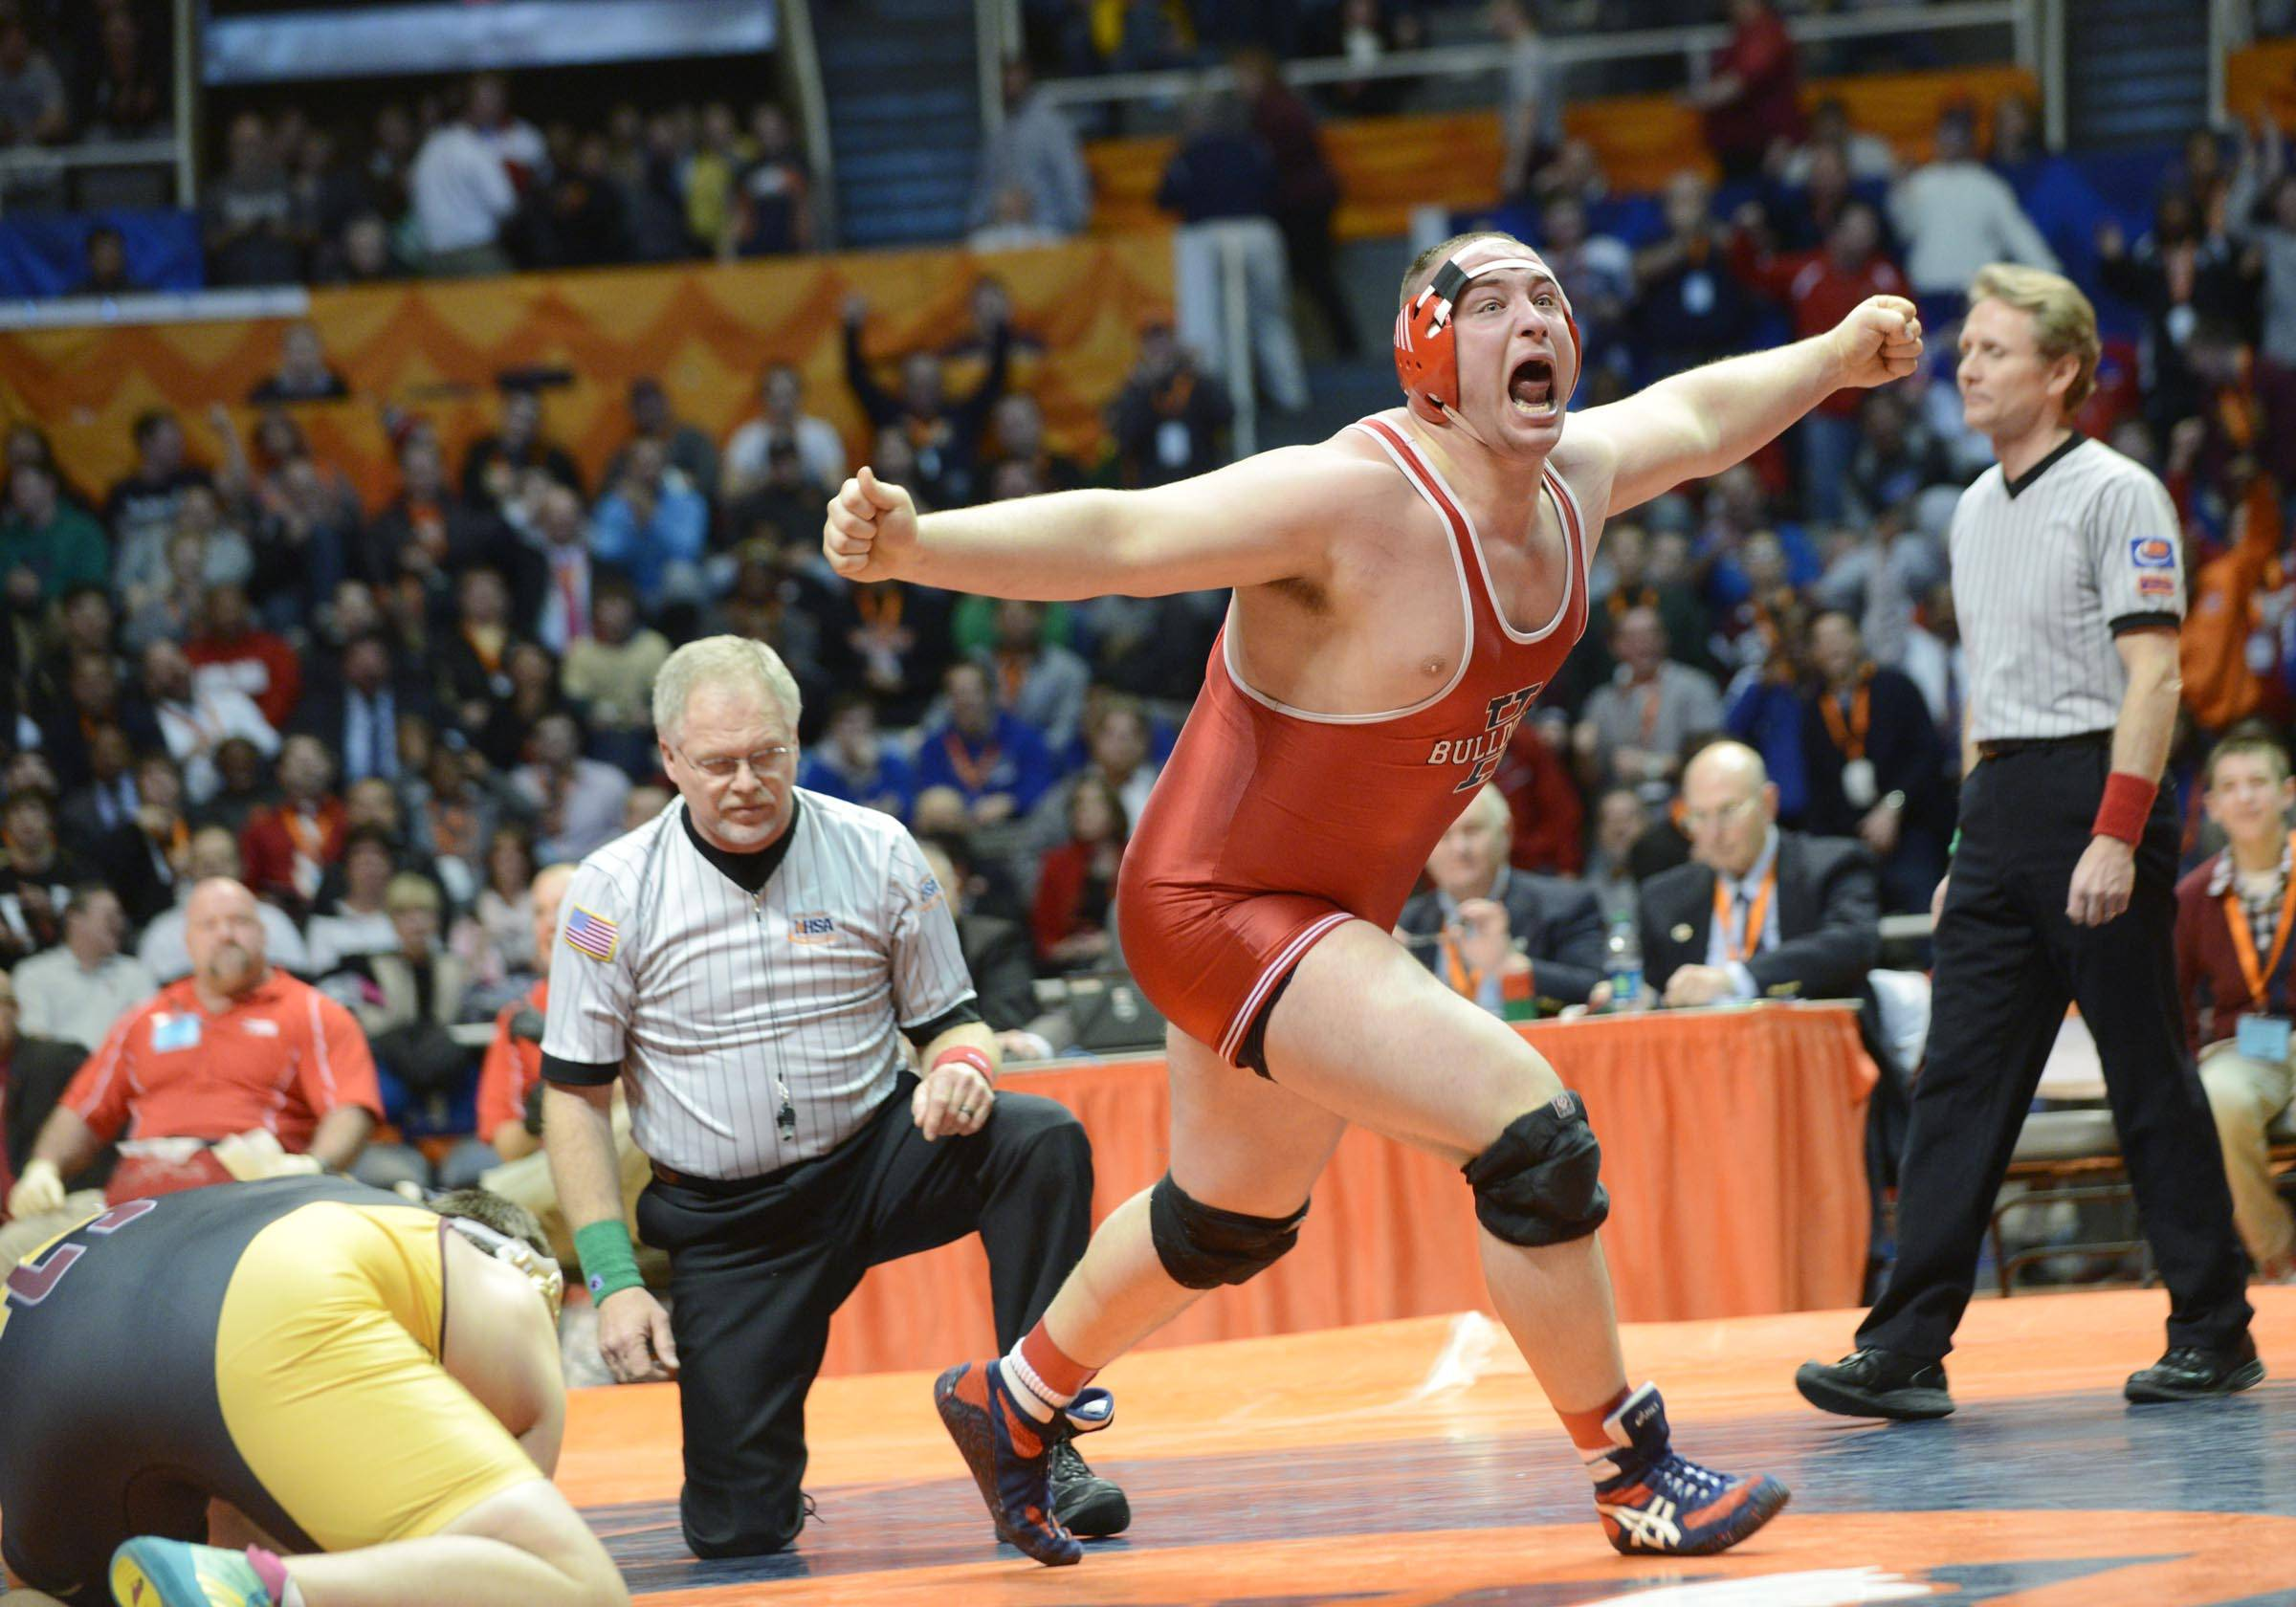 Tanner Farmer of Highland High School celebrates his win against Michael Johnshon of Lombard Montini Catholic High School Saturday in the 285-pound weight class championship match of the wrestling IHSA Class 2A state tournament at State Farm Center in Champaign.